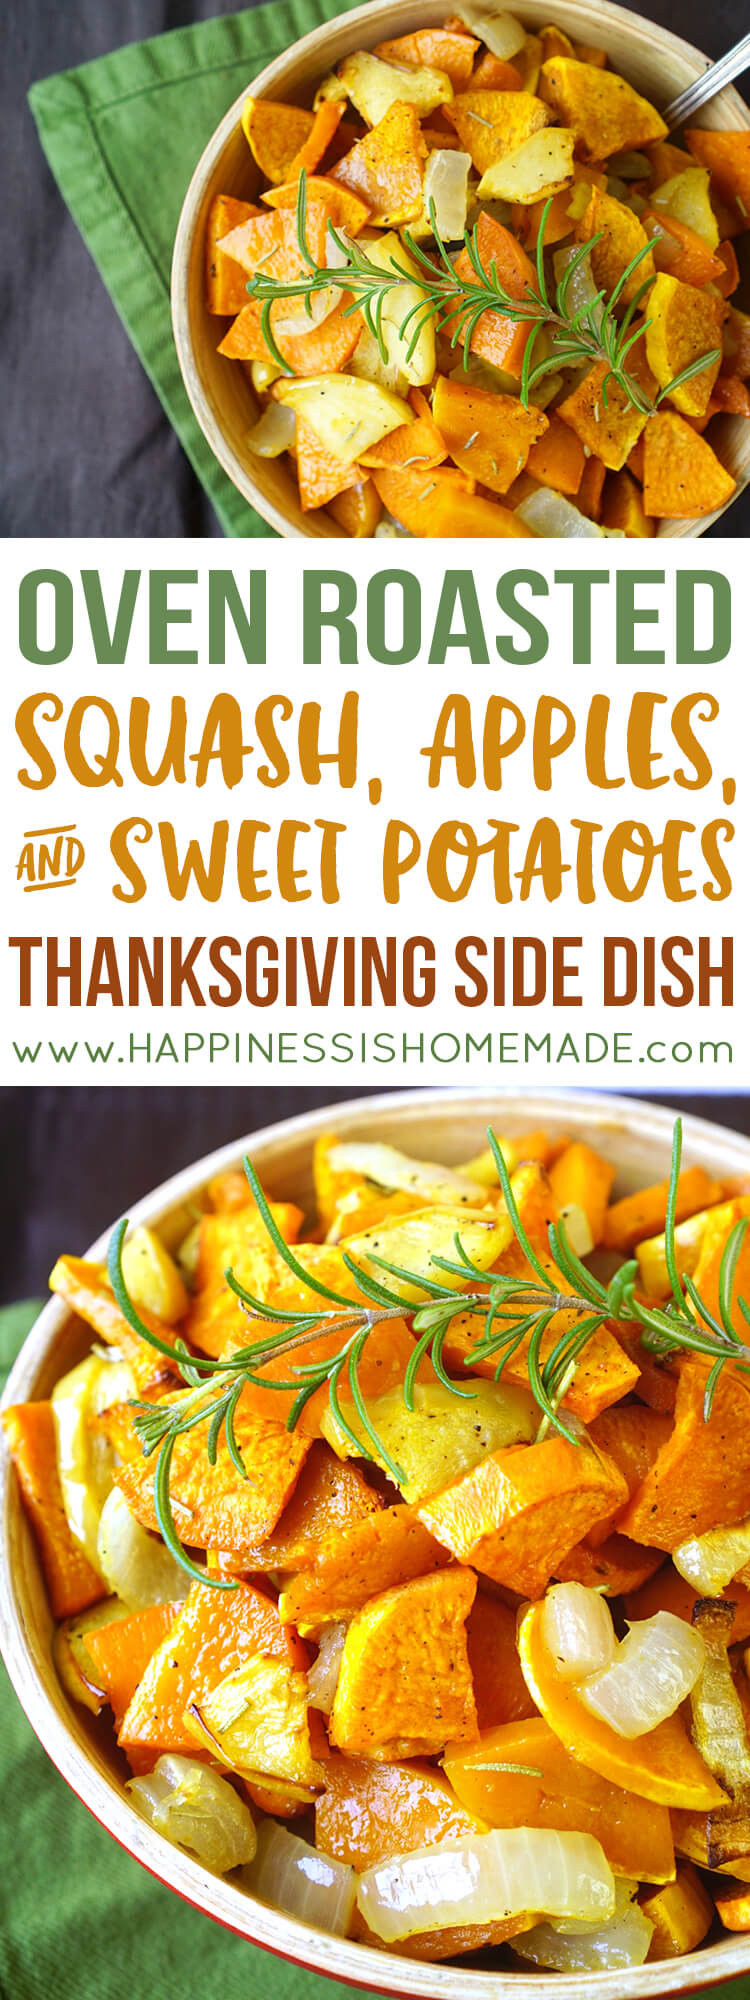 Sweet Potato Thanksgiving  Roasted Sweet Potatoes Squash & Apples Happiness is